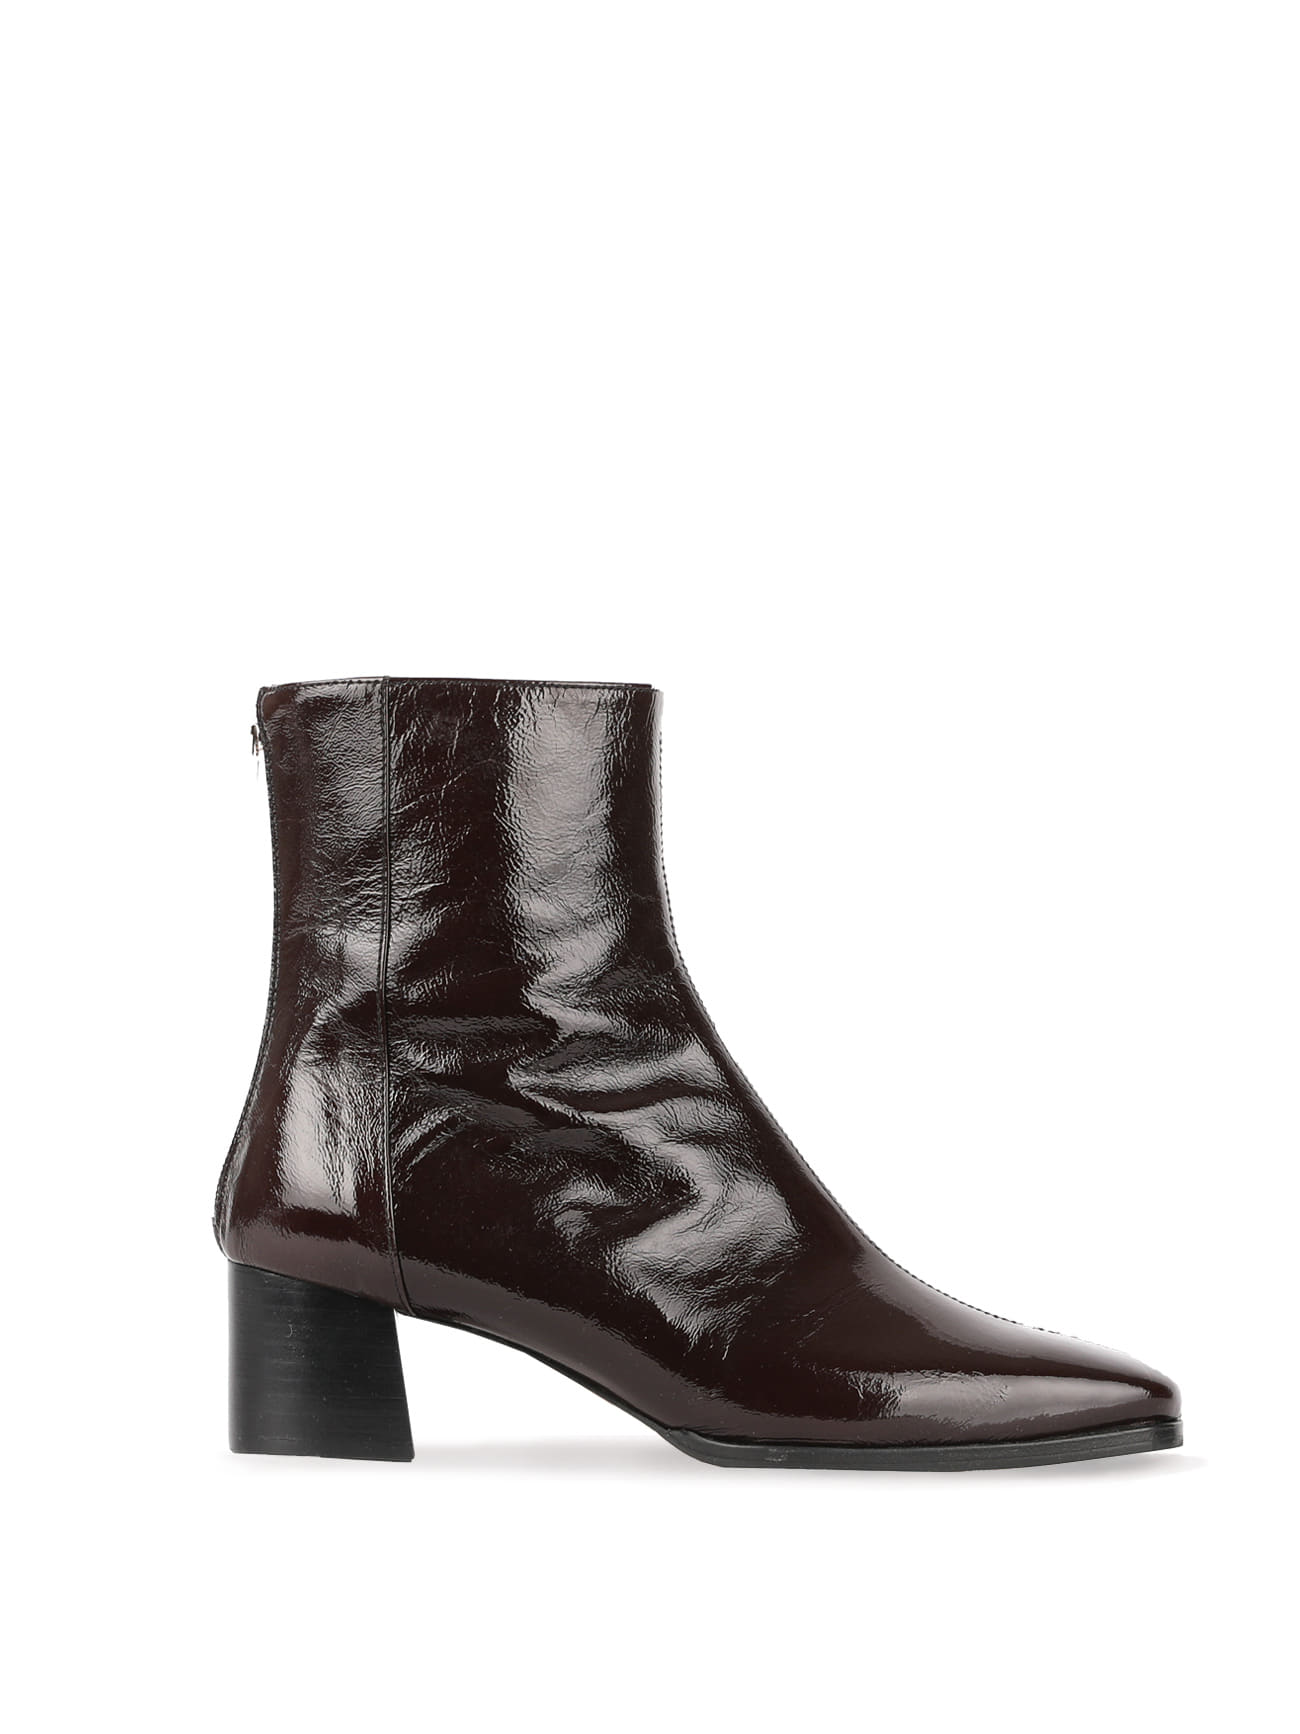 JAMES BLOCK-HEEL LEATHER ANKLE BOOTS (5cm) - CHOCO BROWN